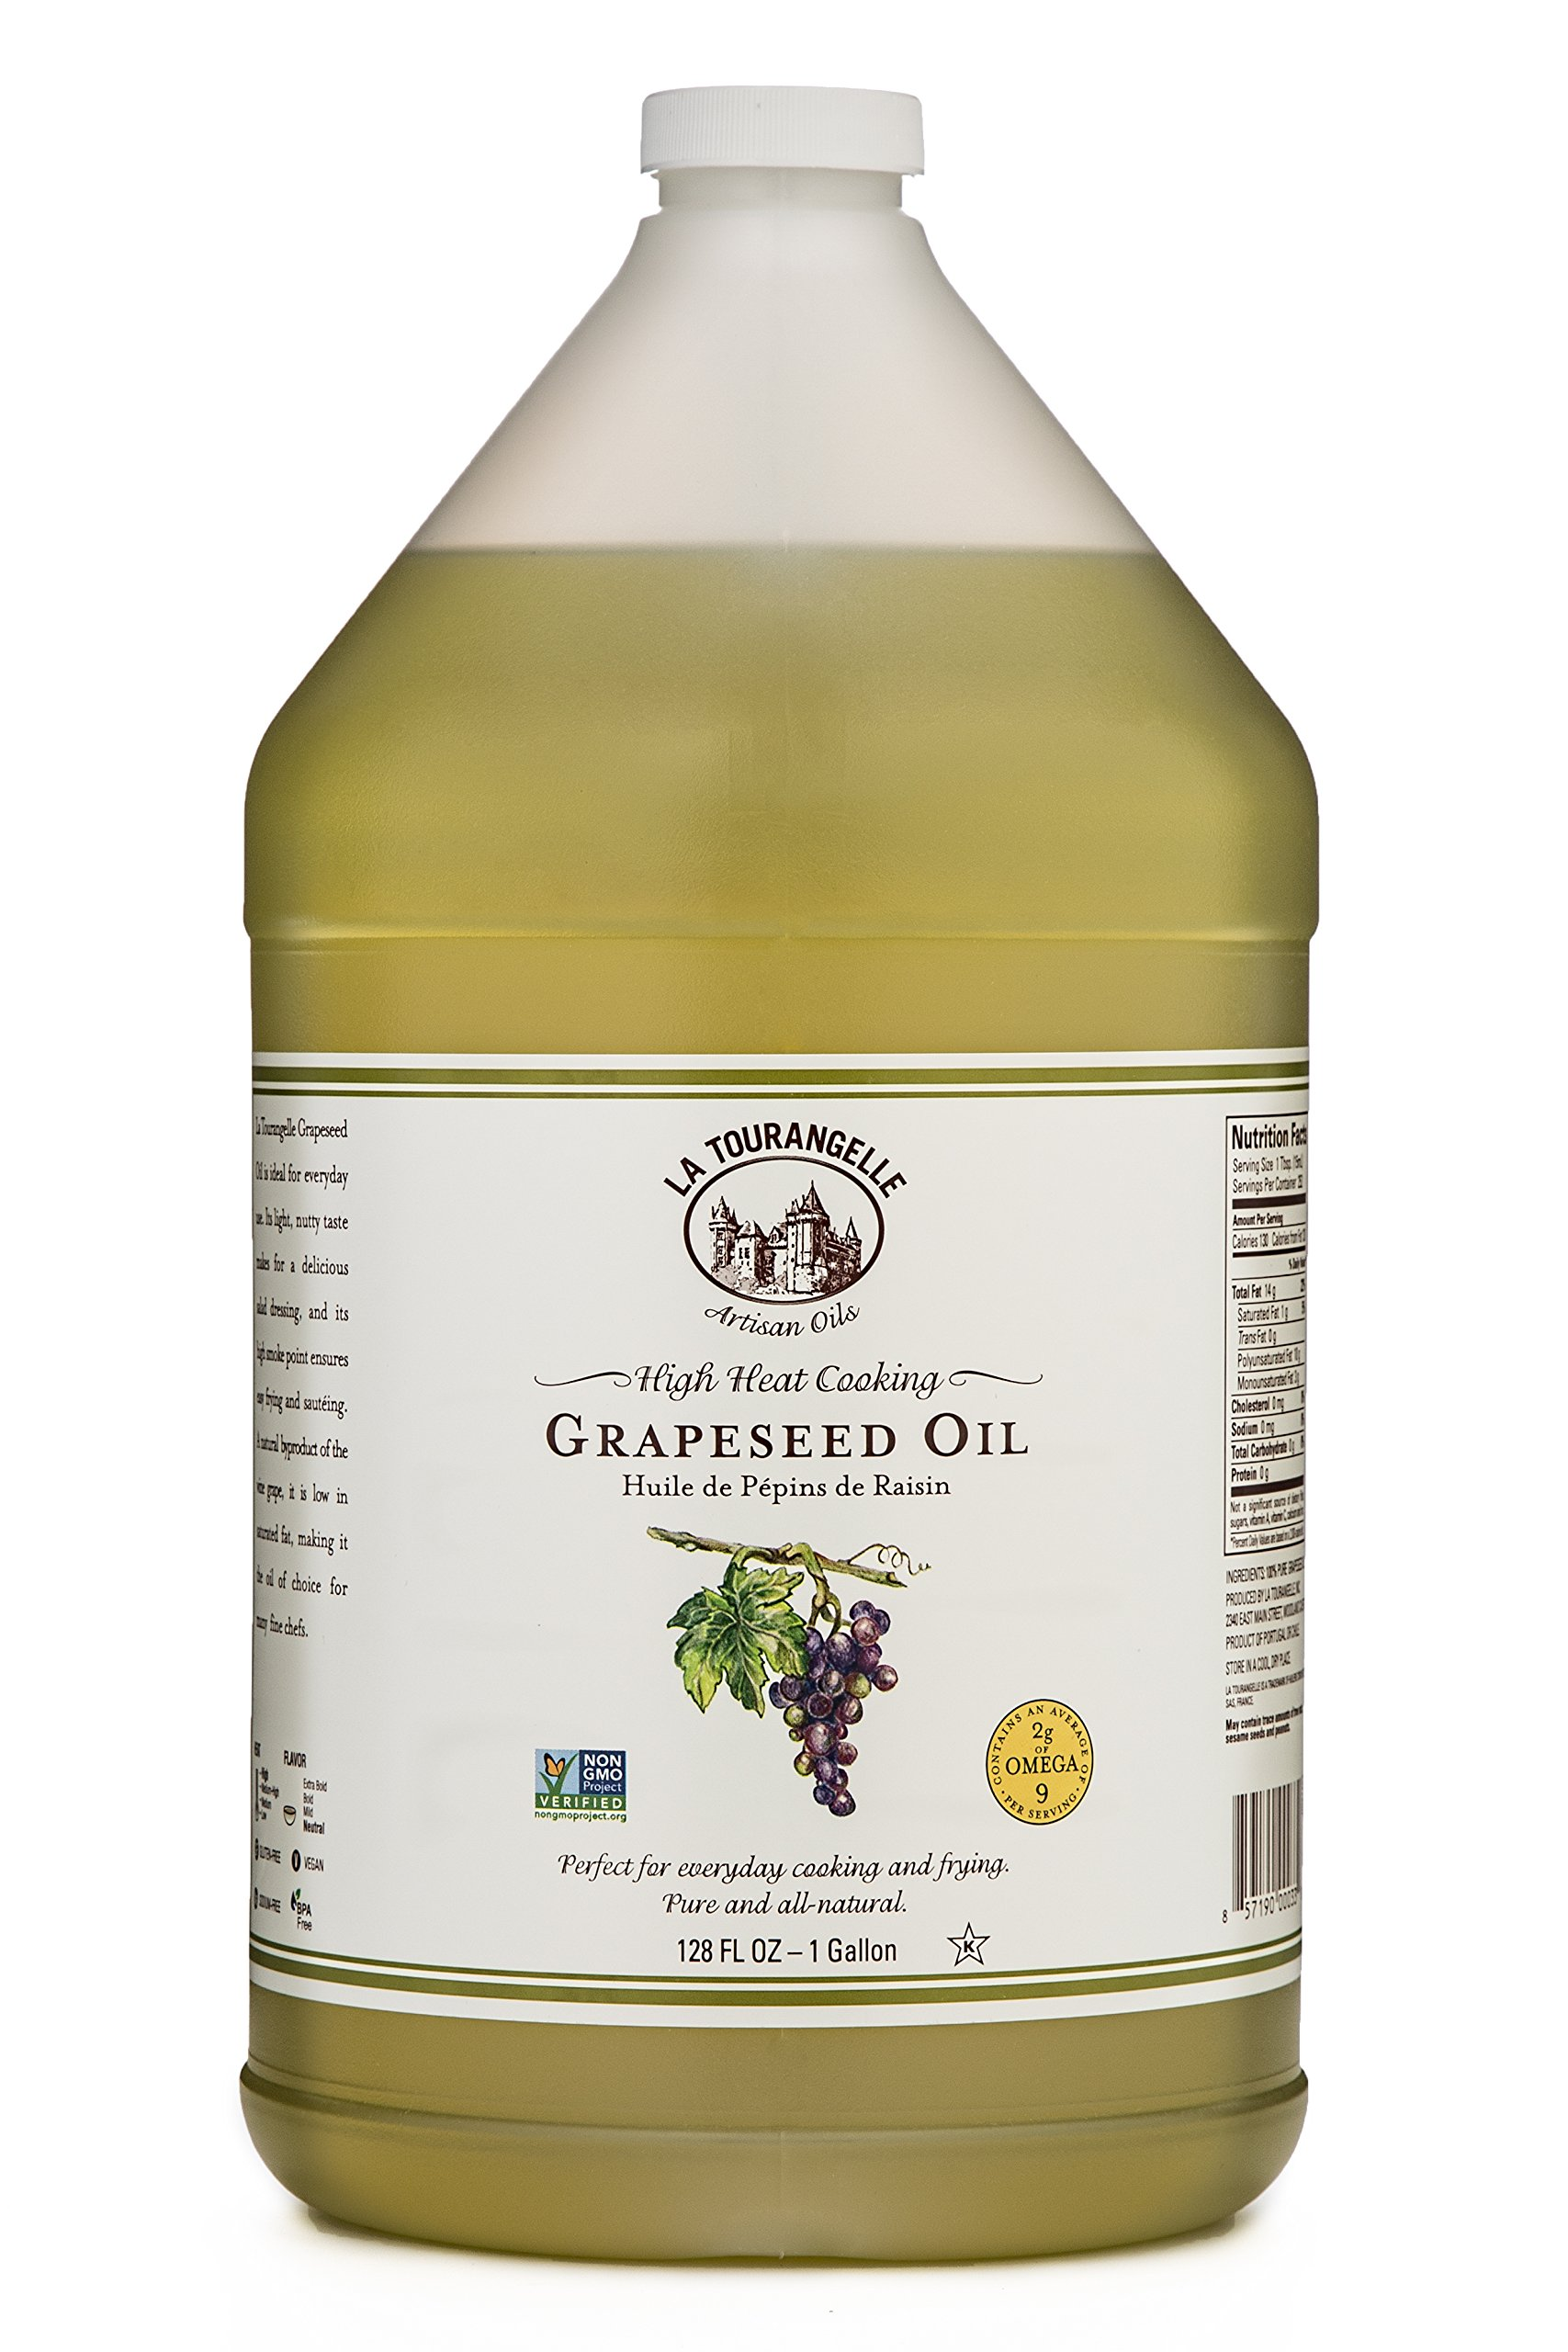 La Tourangelle, Grapeseed Oil, 128 Fluid Ounce, All-Natural, Artisanal, Great for Cooking, Sauteing, Marinating, and Dressing by La Tourangelle